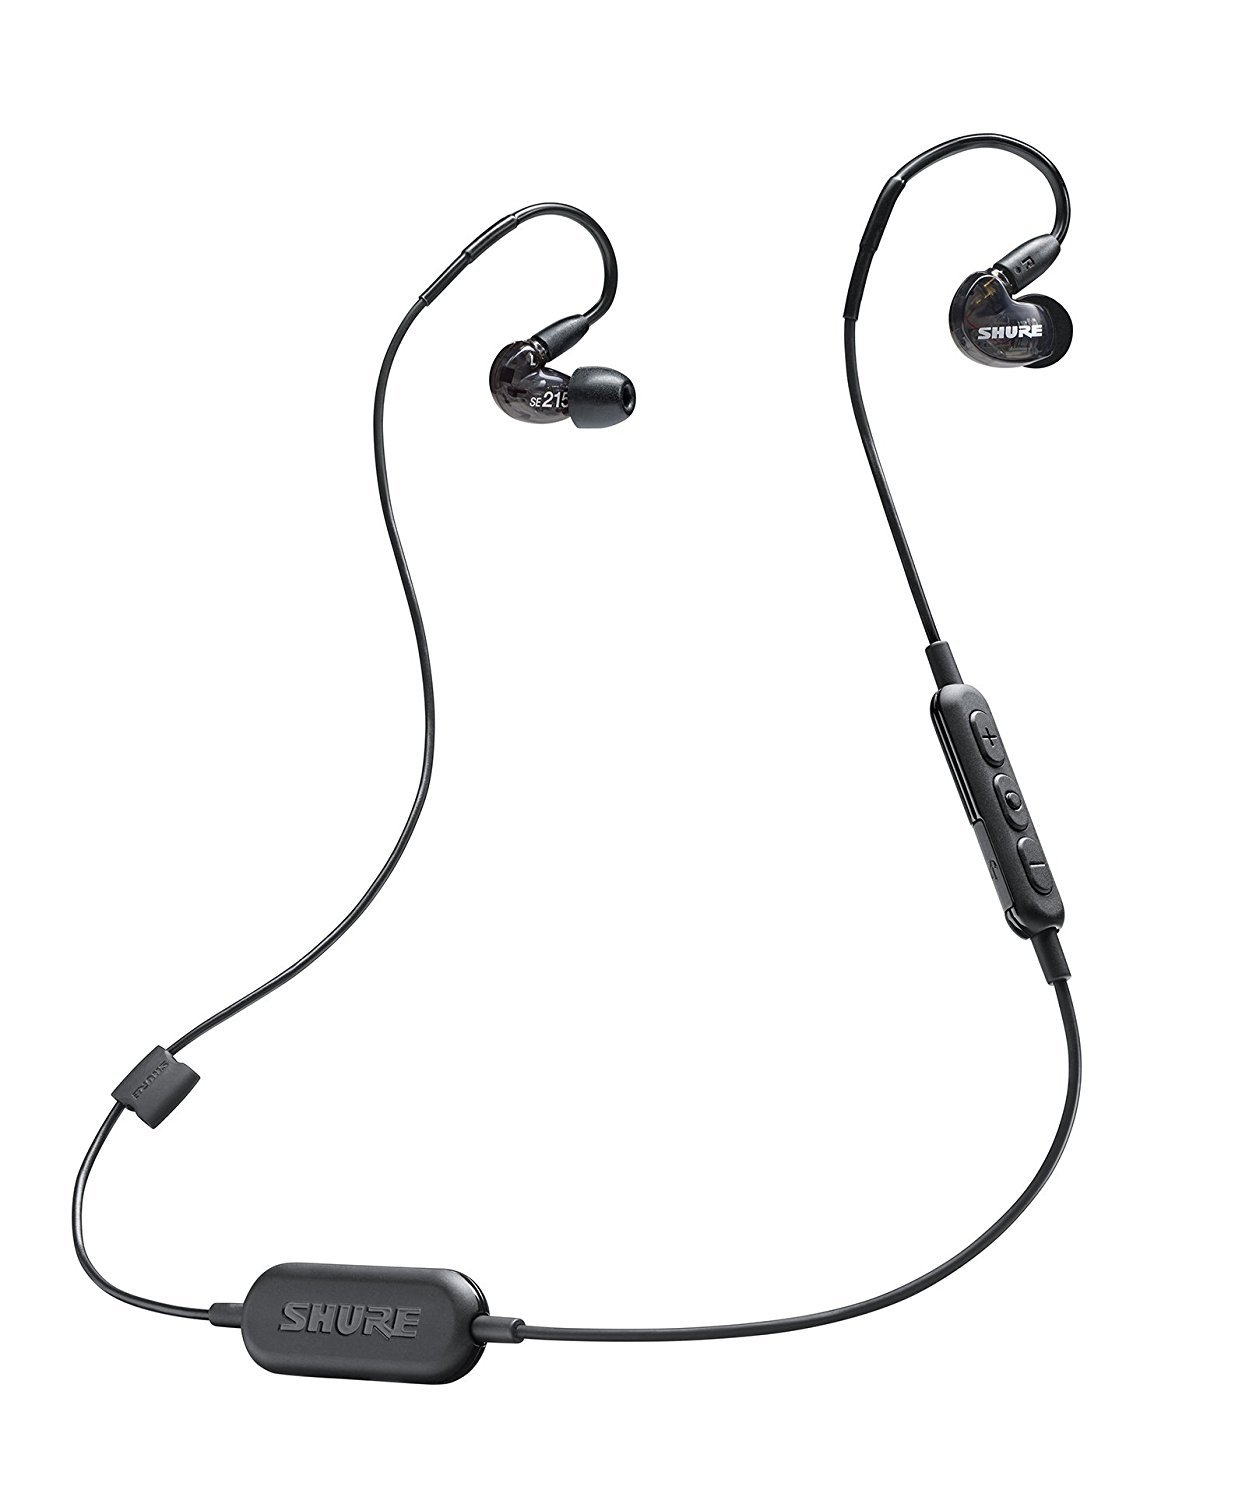 b25bd8a3c6b Amazon.com: Shure SE215-K-BT1 Wireless Sound Isolating Earphones with  Bluetooth Enabled Communication Cable: Musical Instruments